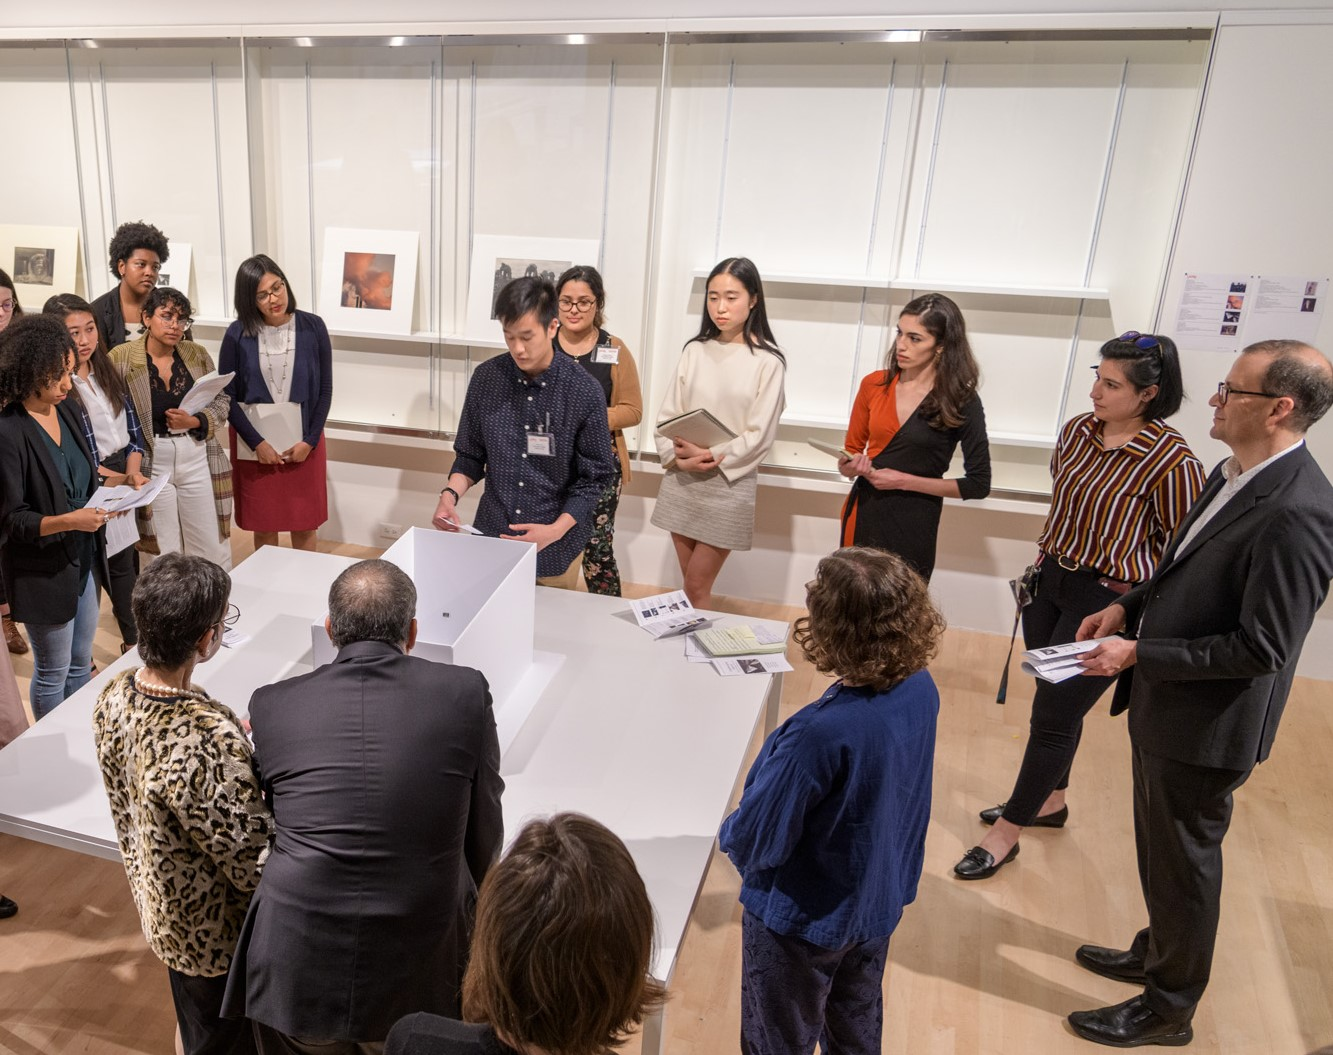 The 2019 Mellon Summer Academy group presenting their exhibition idea to the museum's director, the donor's family, and LACMA staff, photo © Museum Associates/LACMA